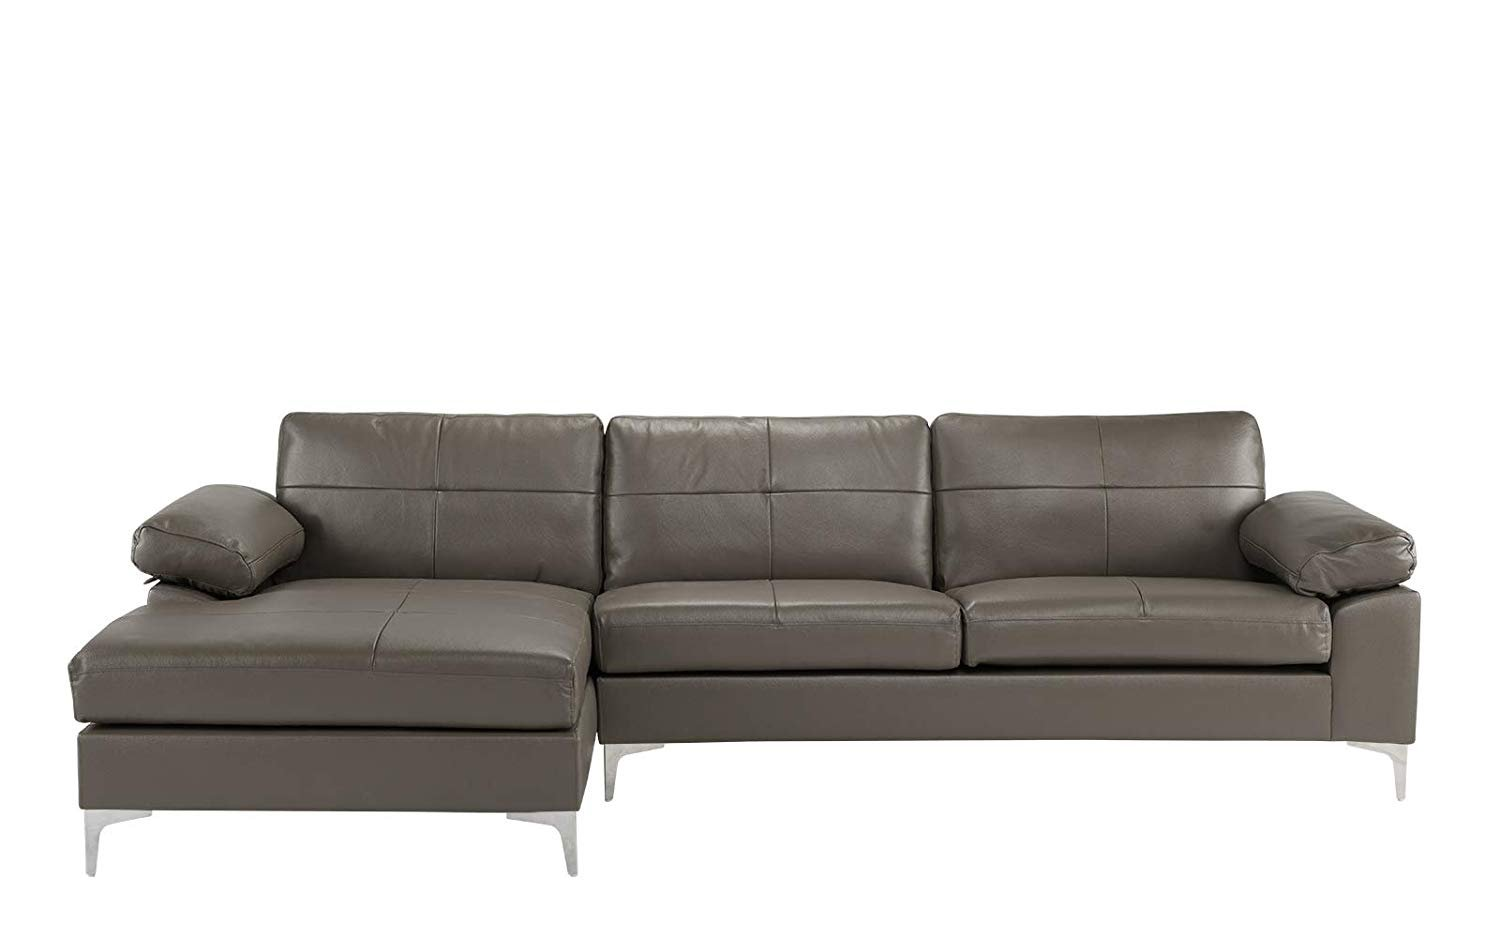 Details about Leather Sofa, Sectional L-Shape Couch with Chaise, Grey